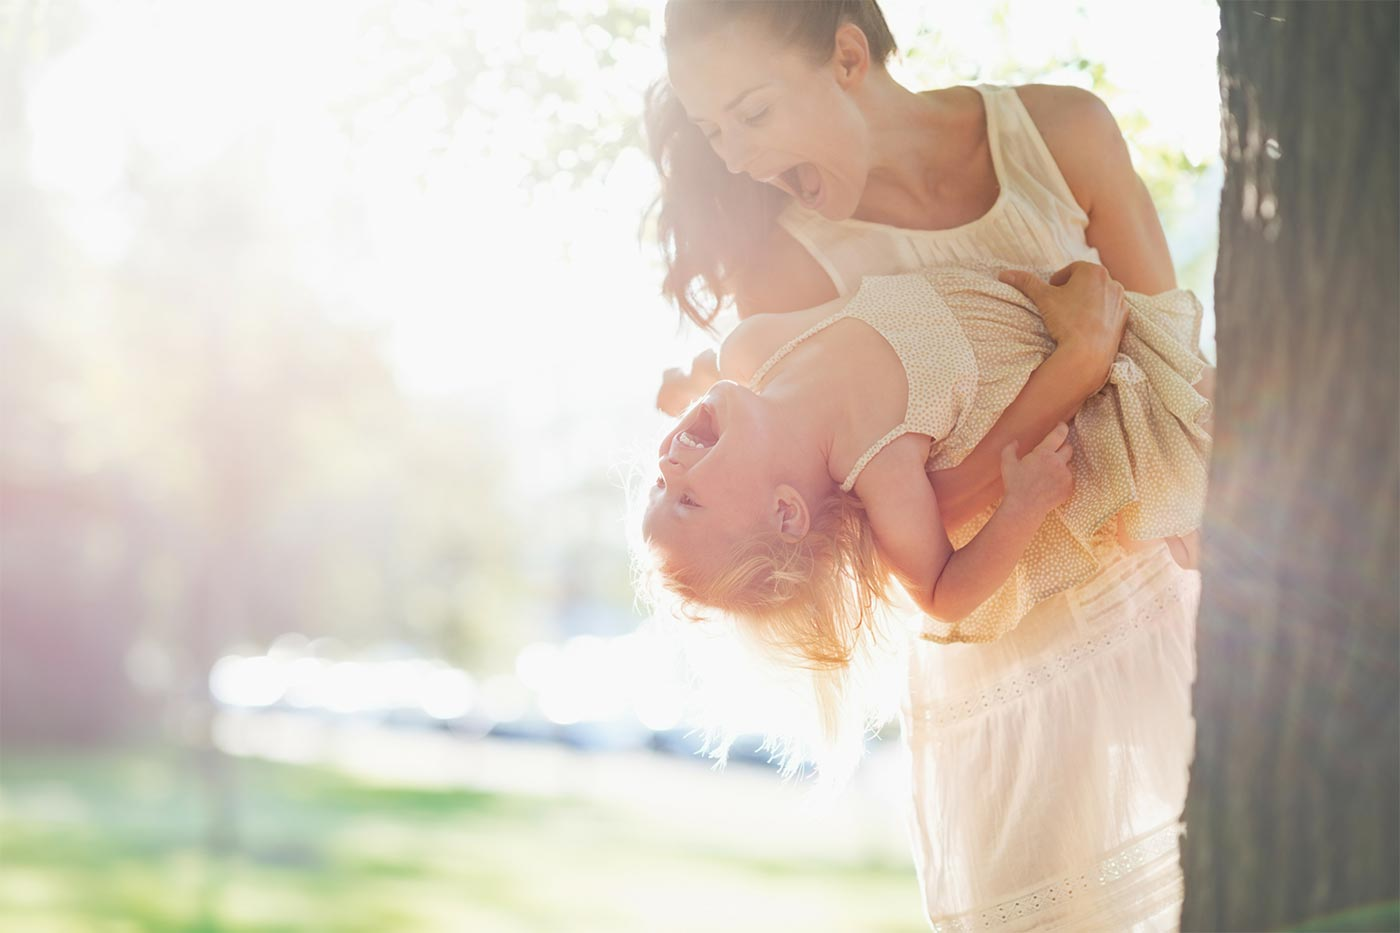 Mom carrying her daughter outdoors